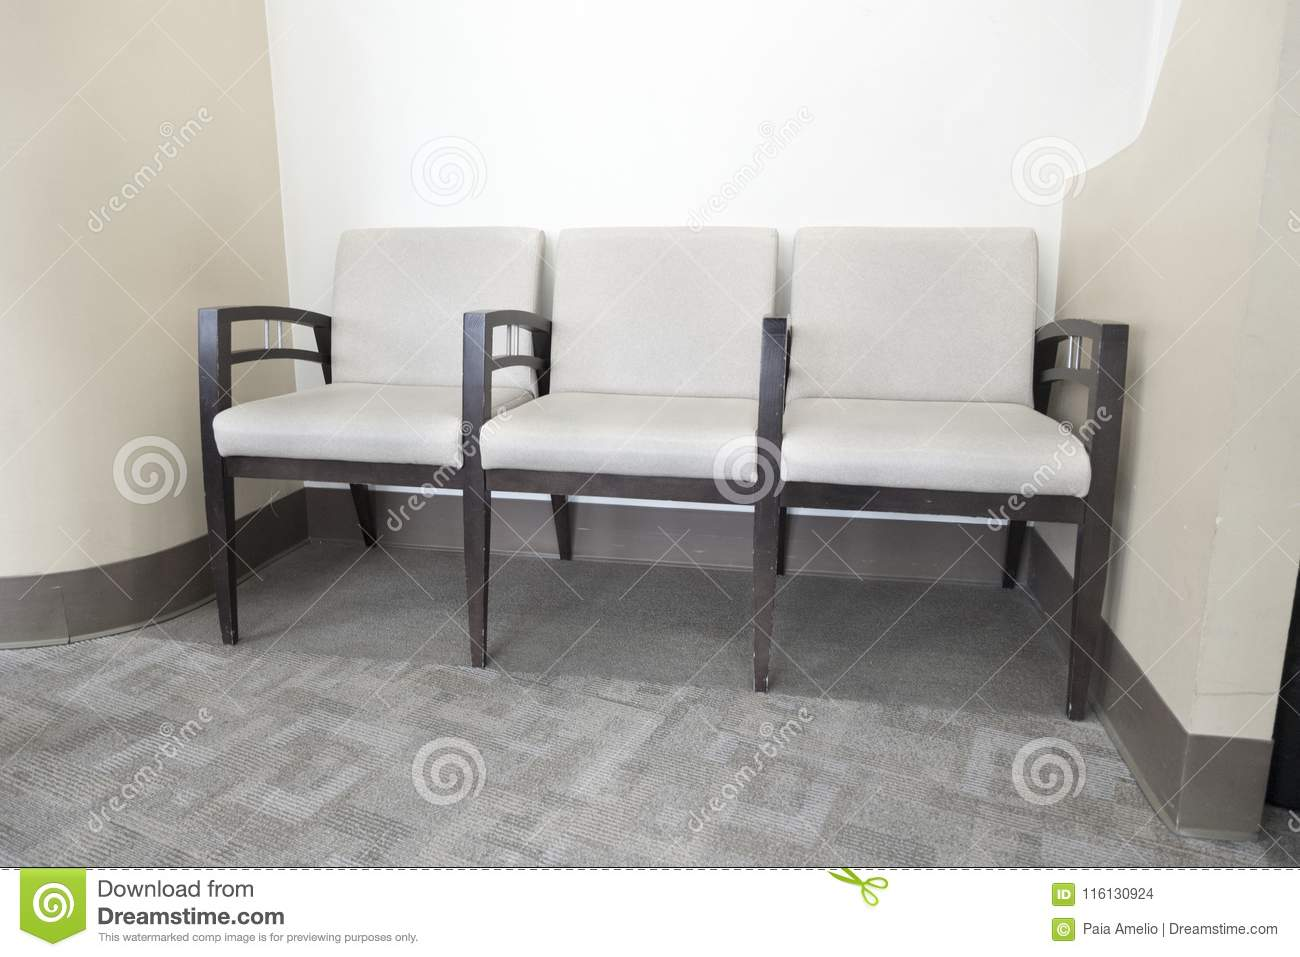 Groovy Waiting Room Chairs Physicians Office Hospital Room Stock Interior Design Ideas Tzicisoteloinfo